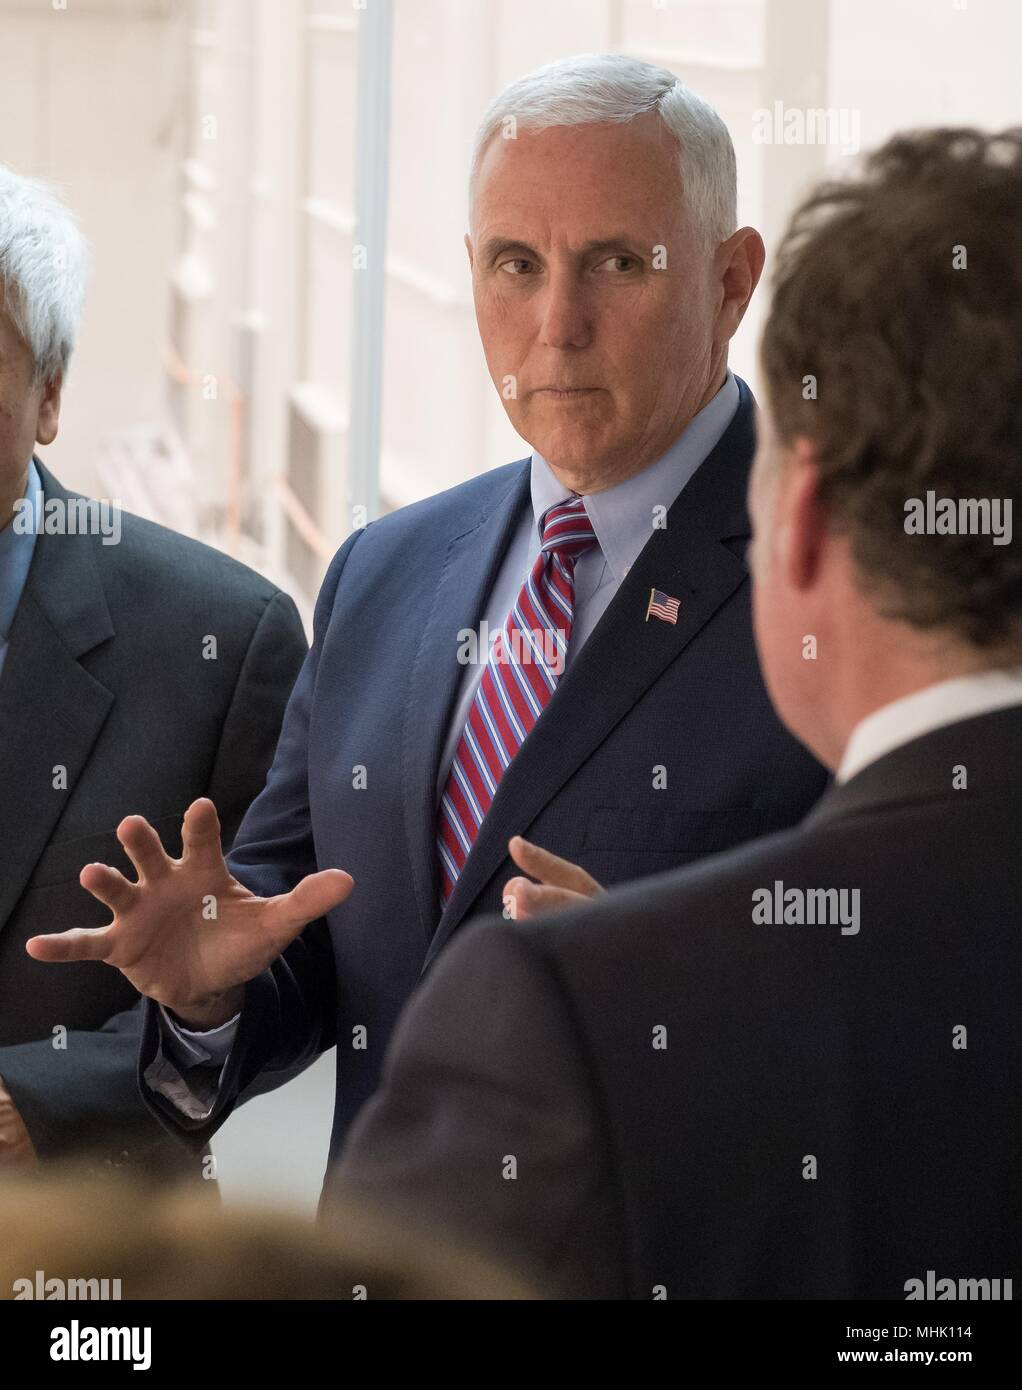 U.S. Vice President Mike Pence, center, talks with JPL Director Michael Watkins, left, during a tour of the NASA Jet Propulsion Laboratory April 28, 2018 in Pasadena, California. - Stock Image